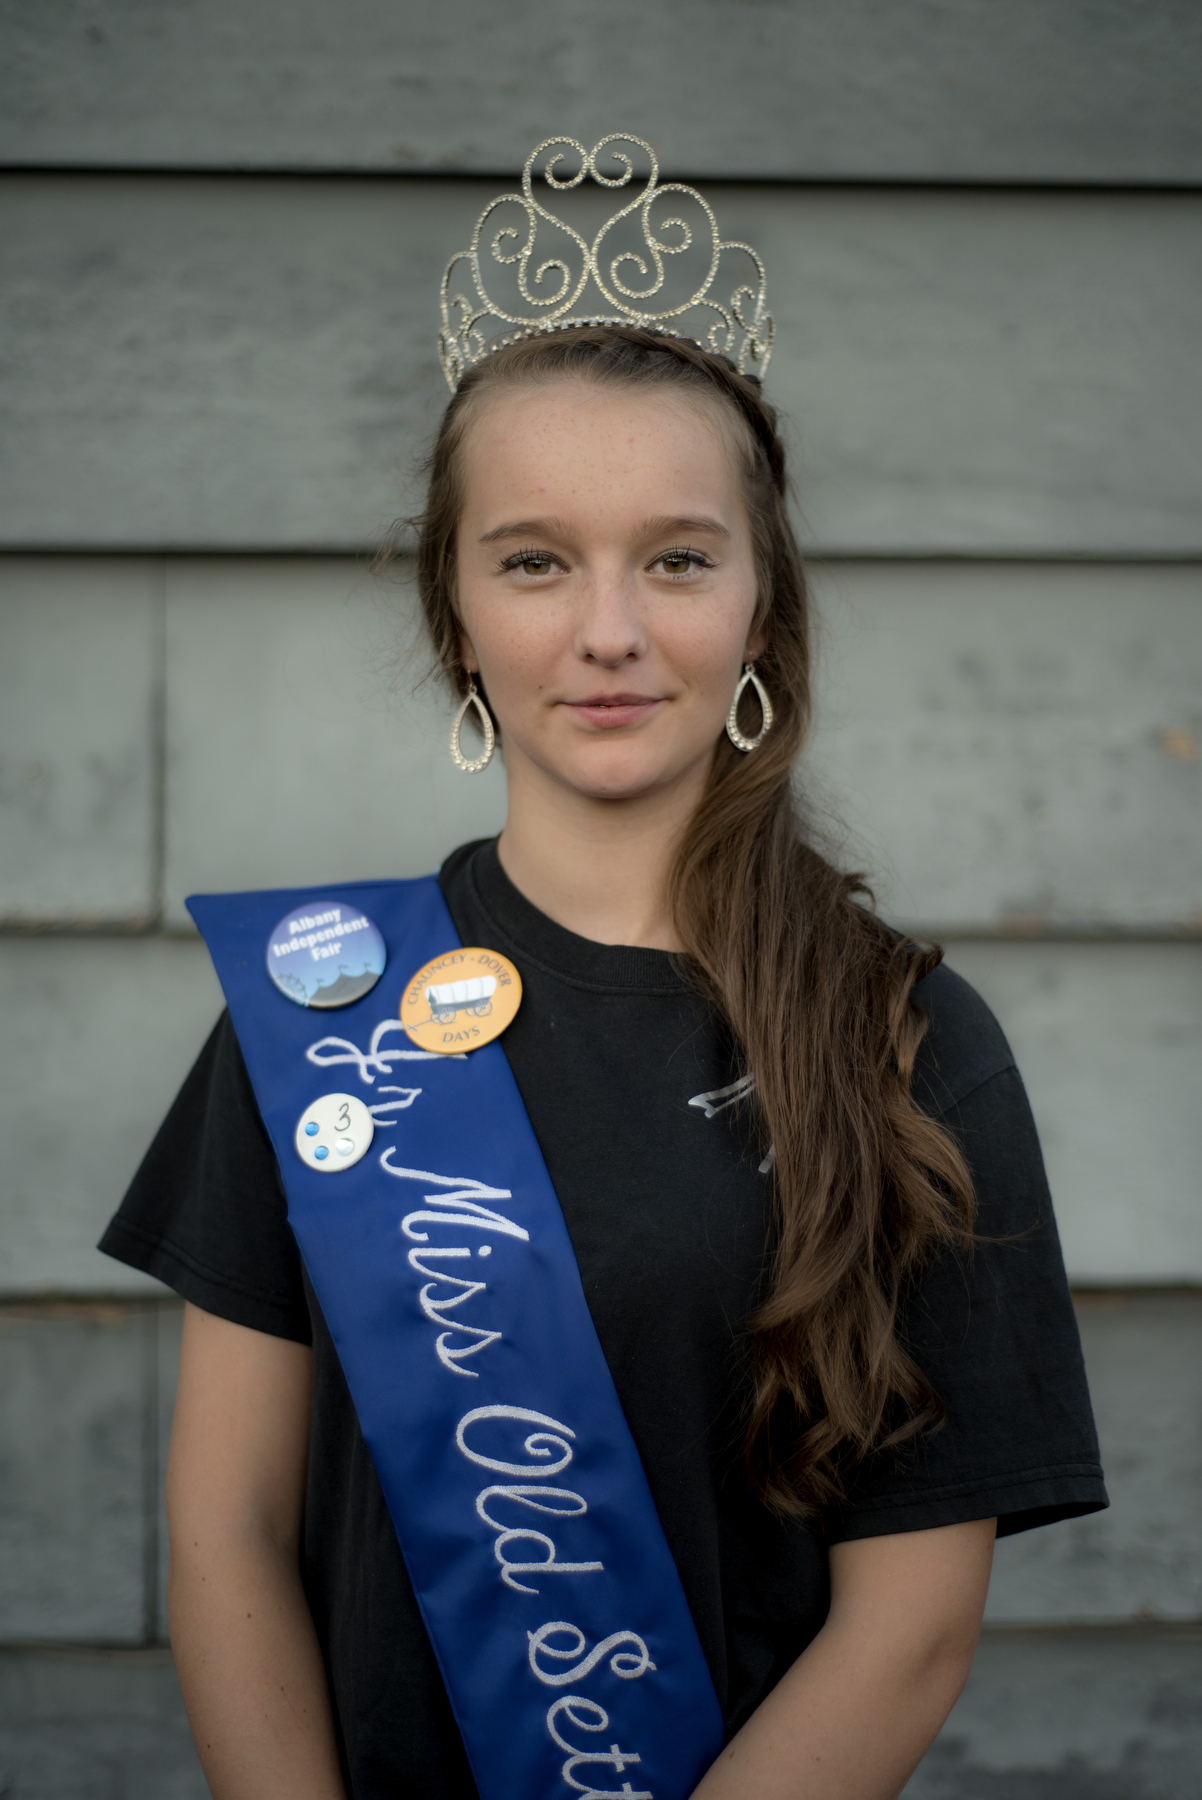 Chelsie Hogsett, the 2015 Junior Miss Old Settler, poses for a portrait at the Old Settler's Reunion in Jacksonville, Ohio on Sept. 4, 2016.